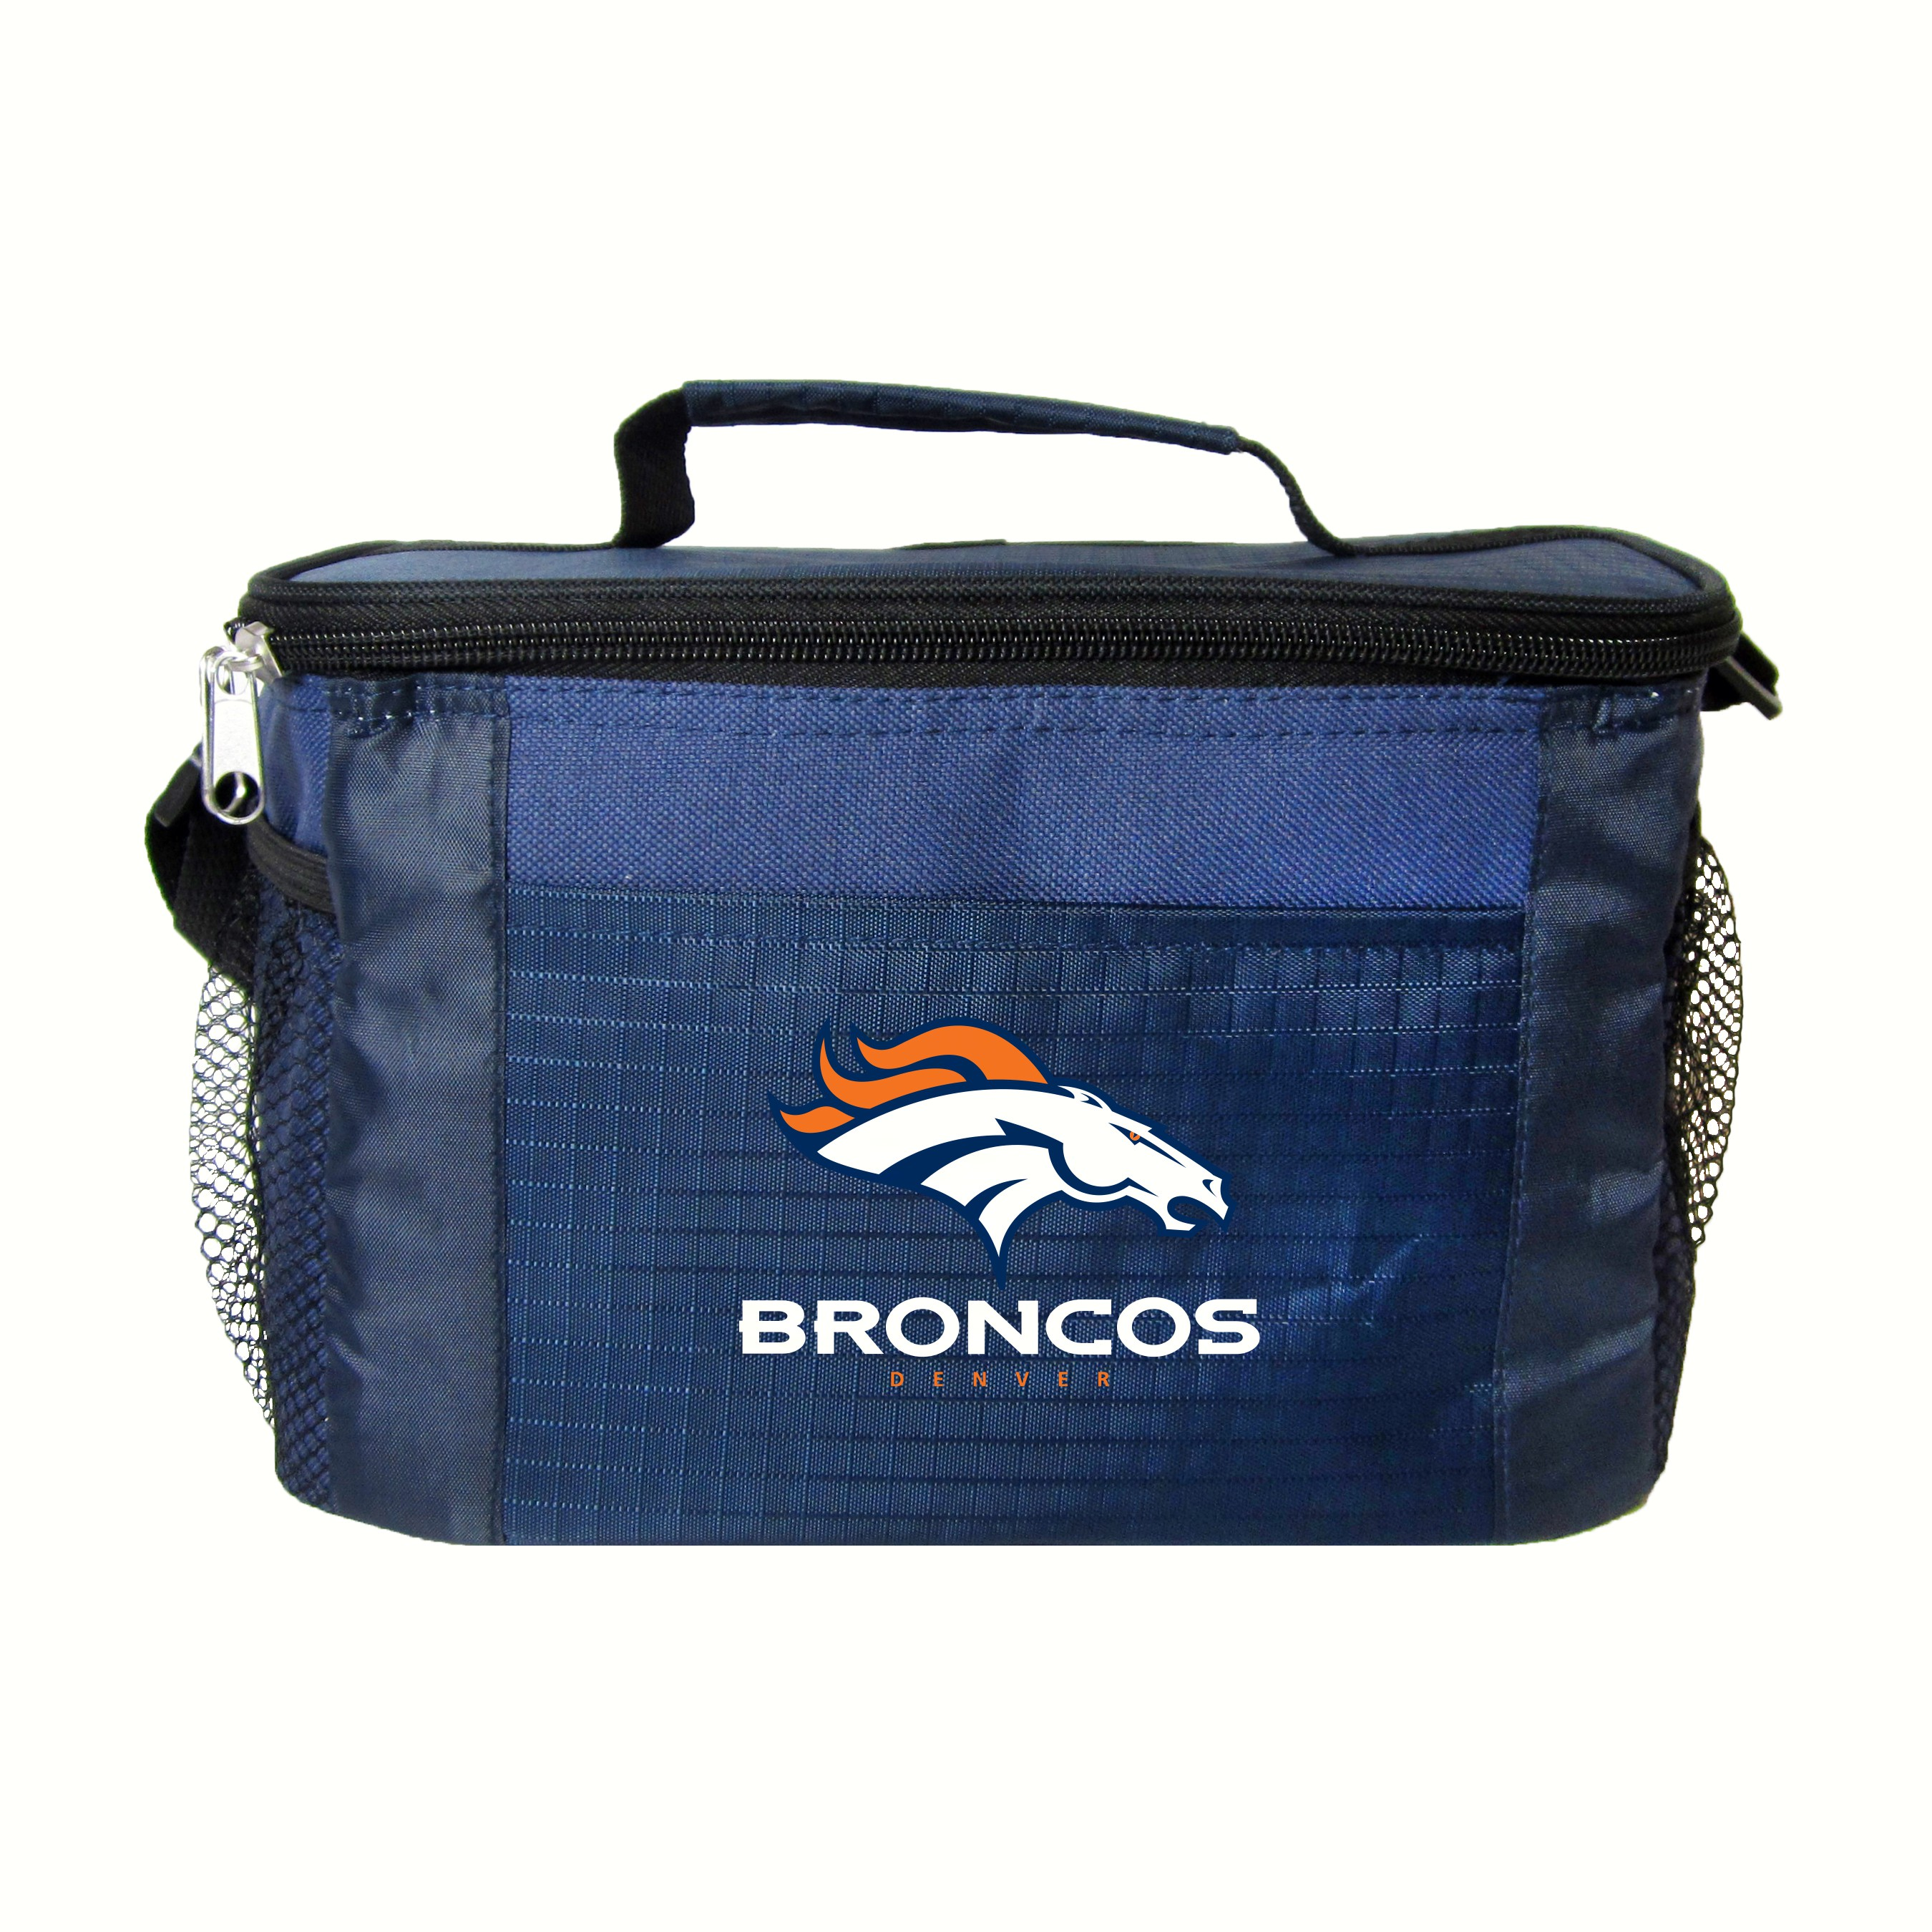 6 pack Kooler Bag - Denver Broncos